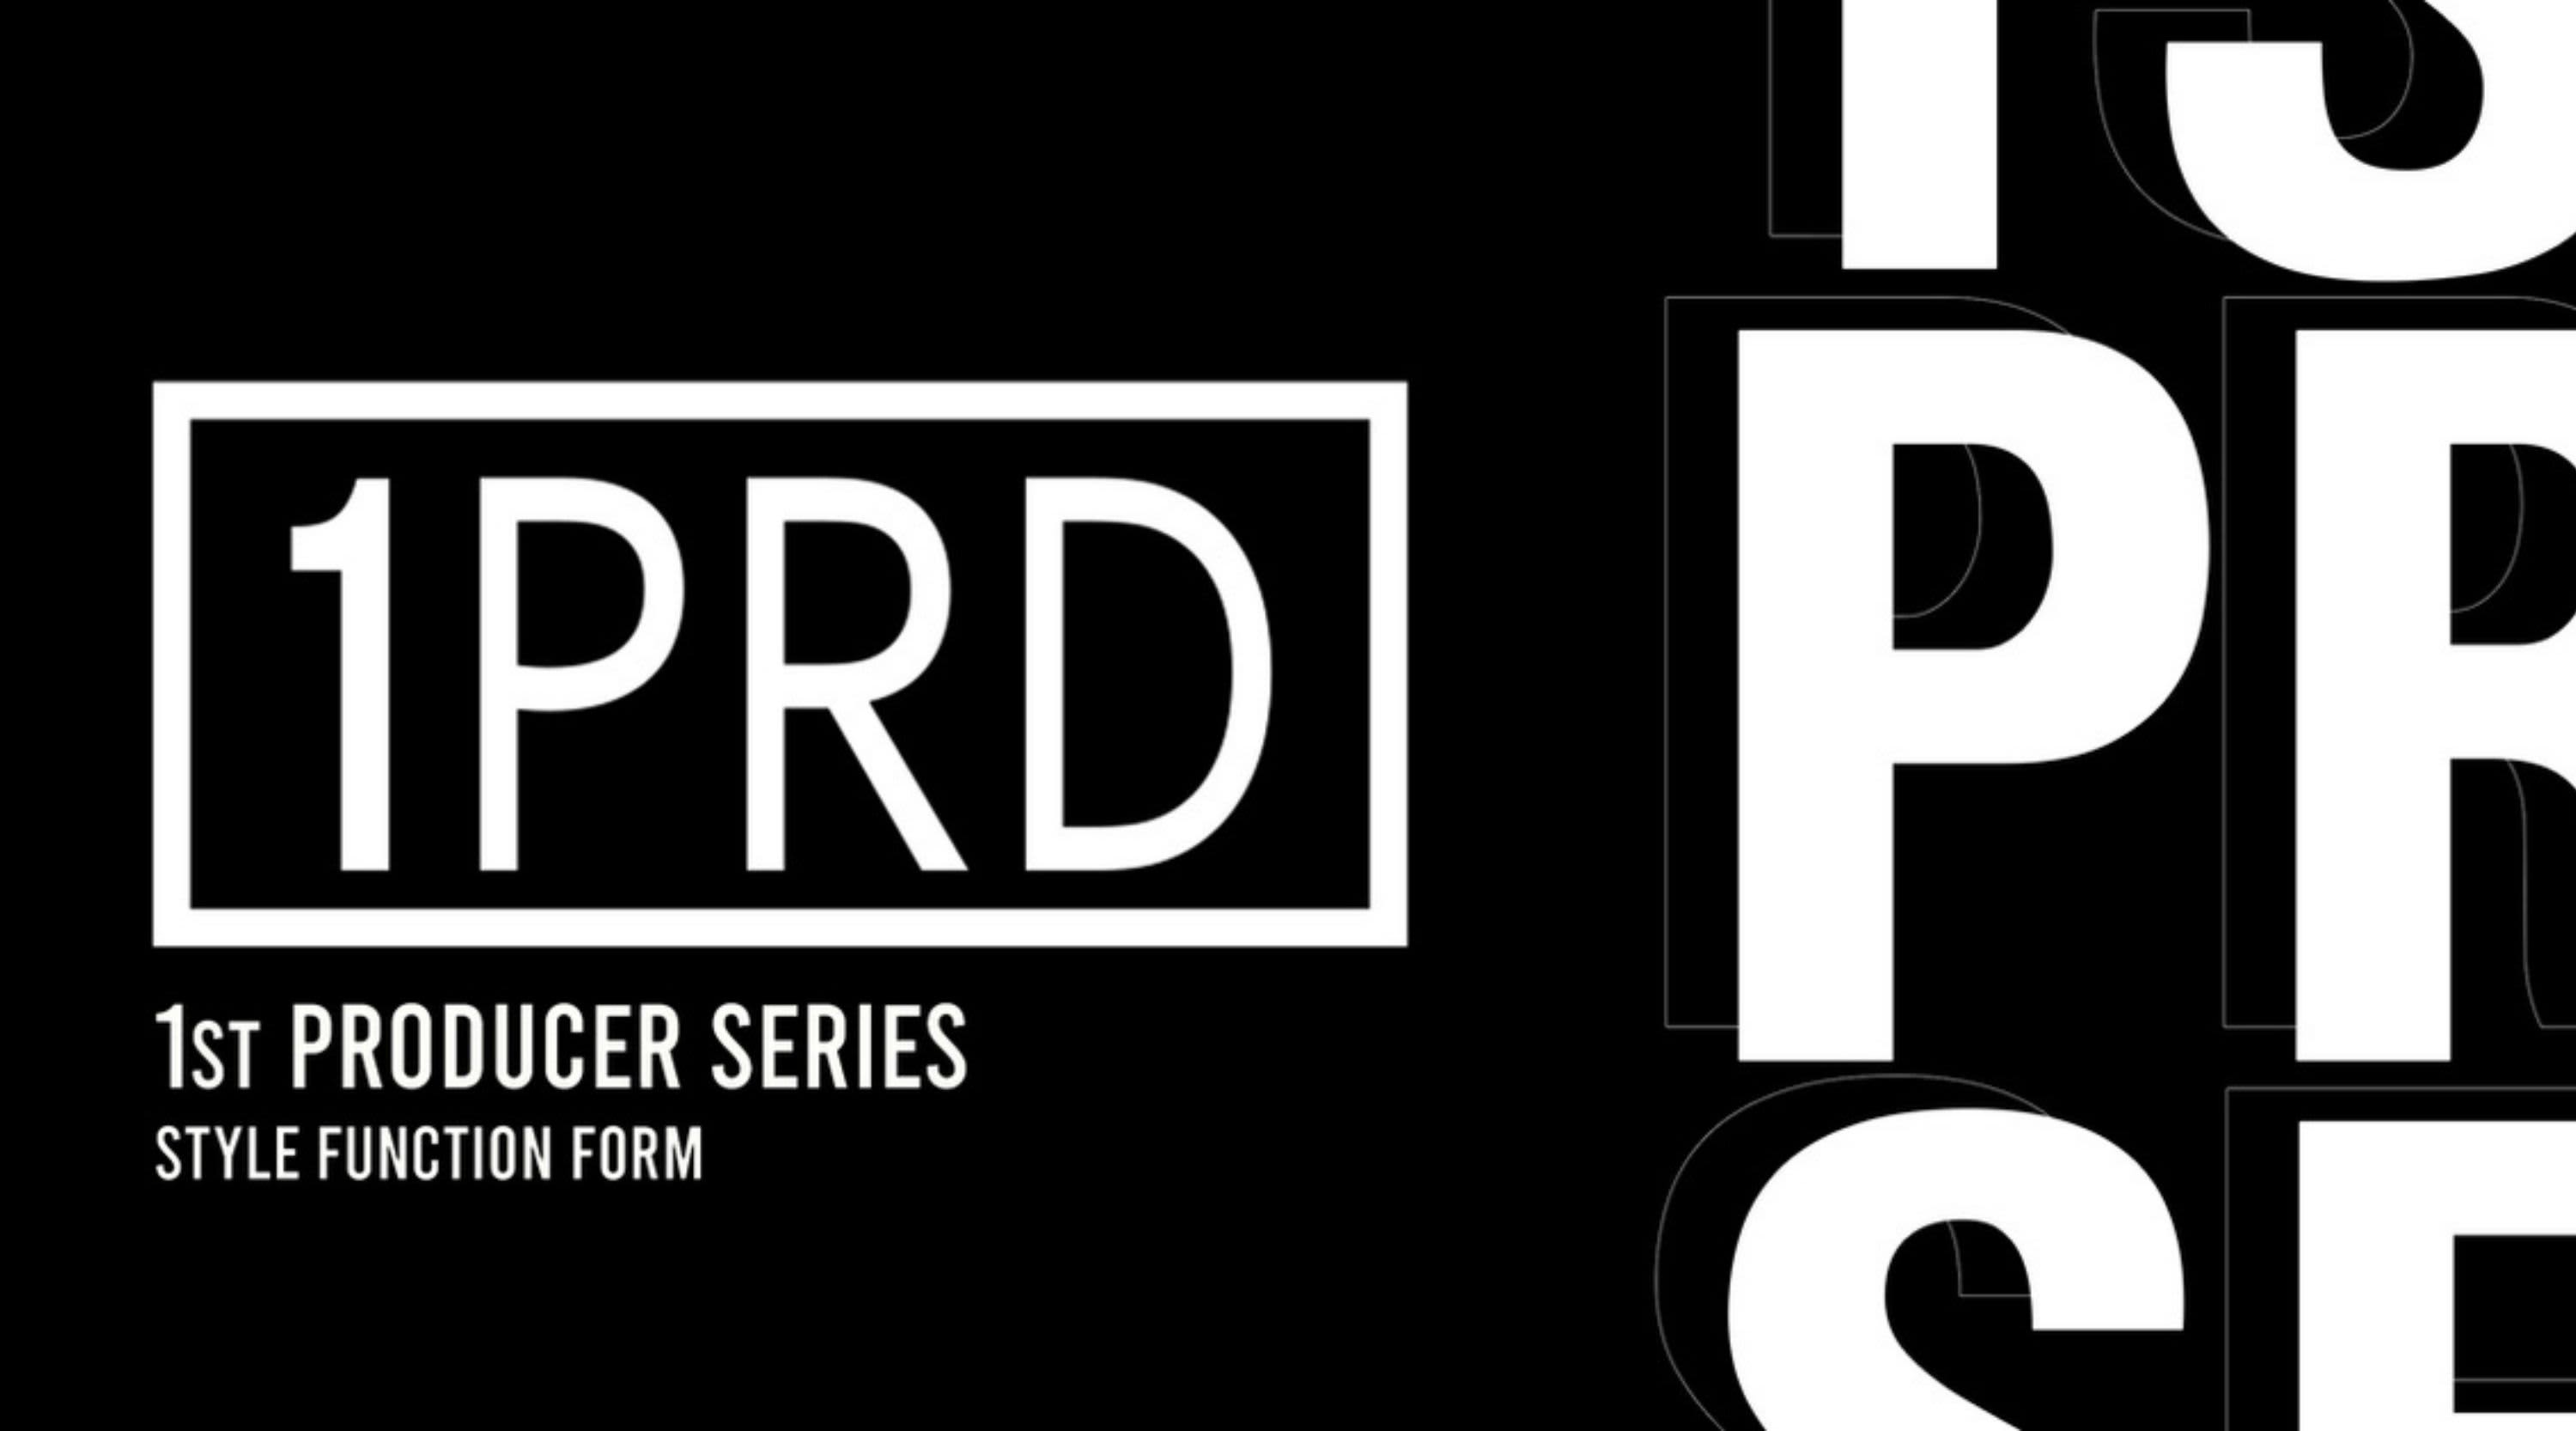 Introducing 1st Producer Series